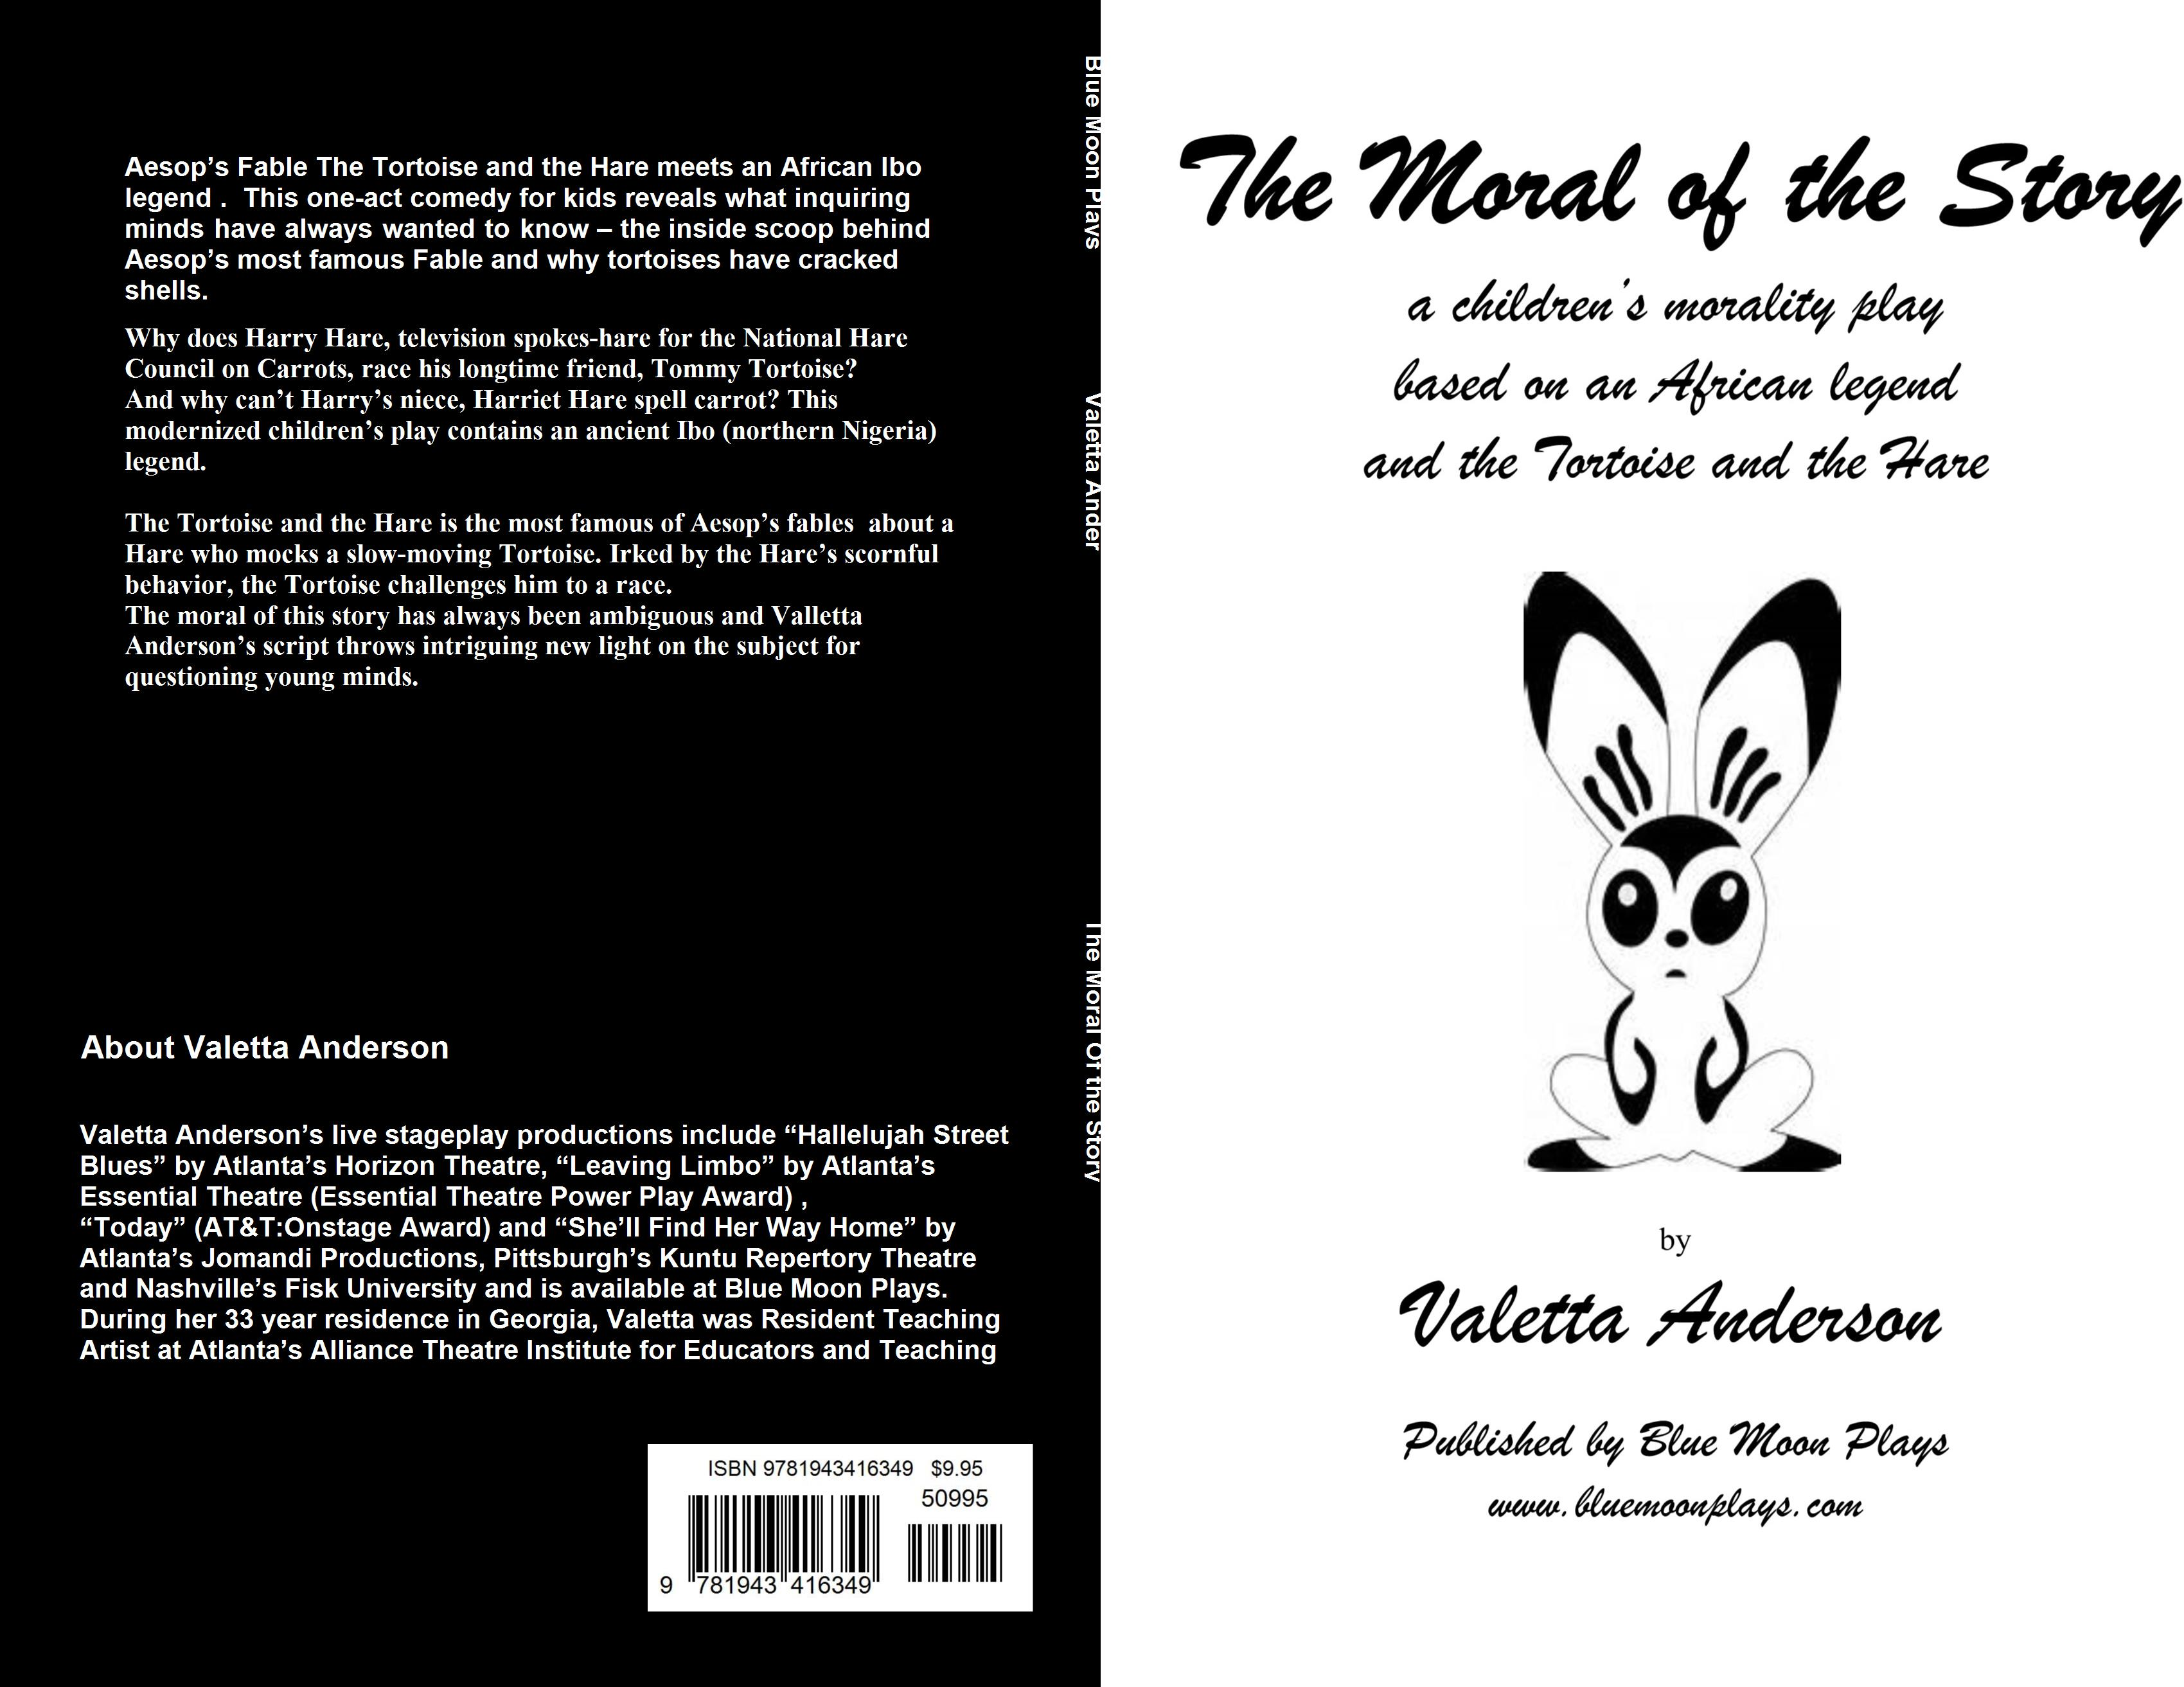 A List Of Fables And Their Morals the moral of the storyjean klein : $9.95 : 9781943416349